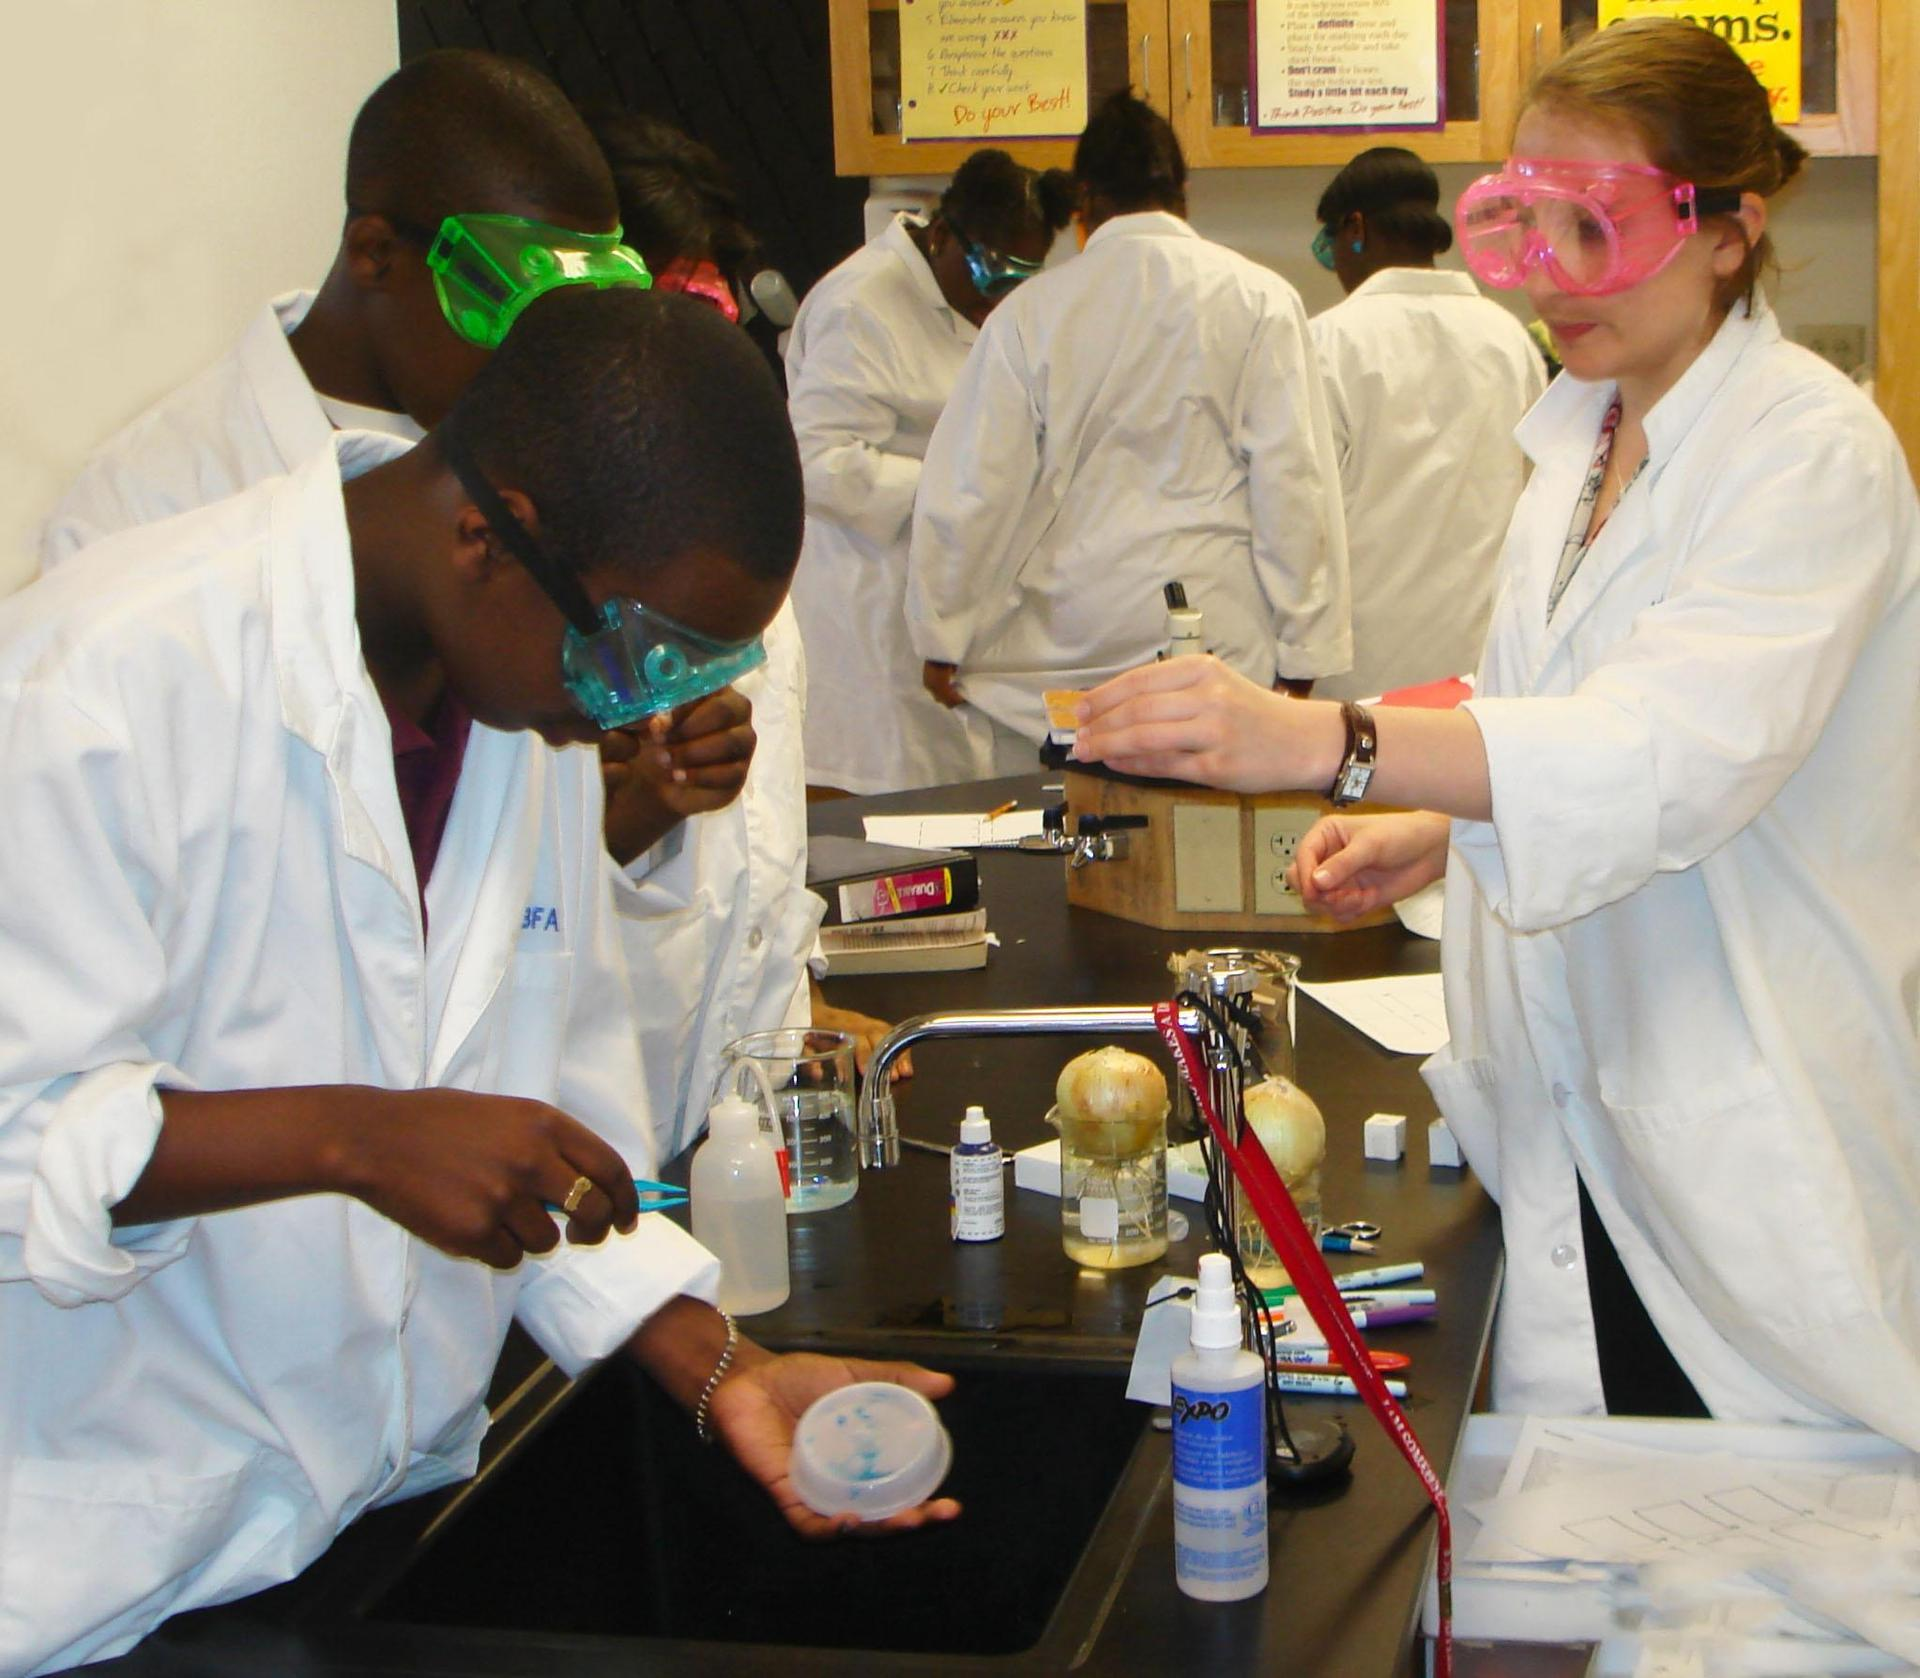 Middle School students carrying out an experiment in the science lab